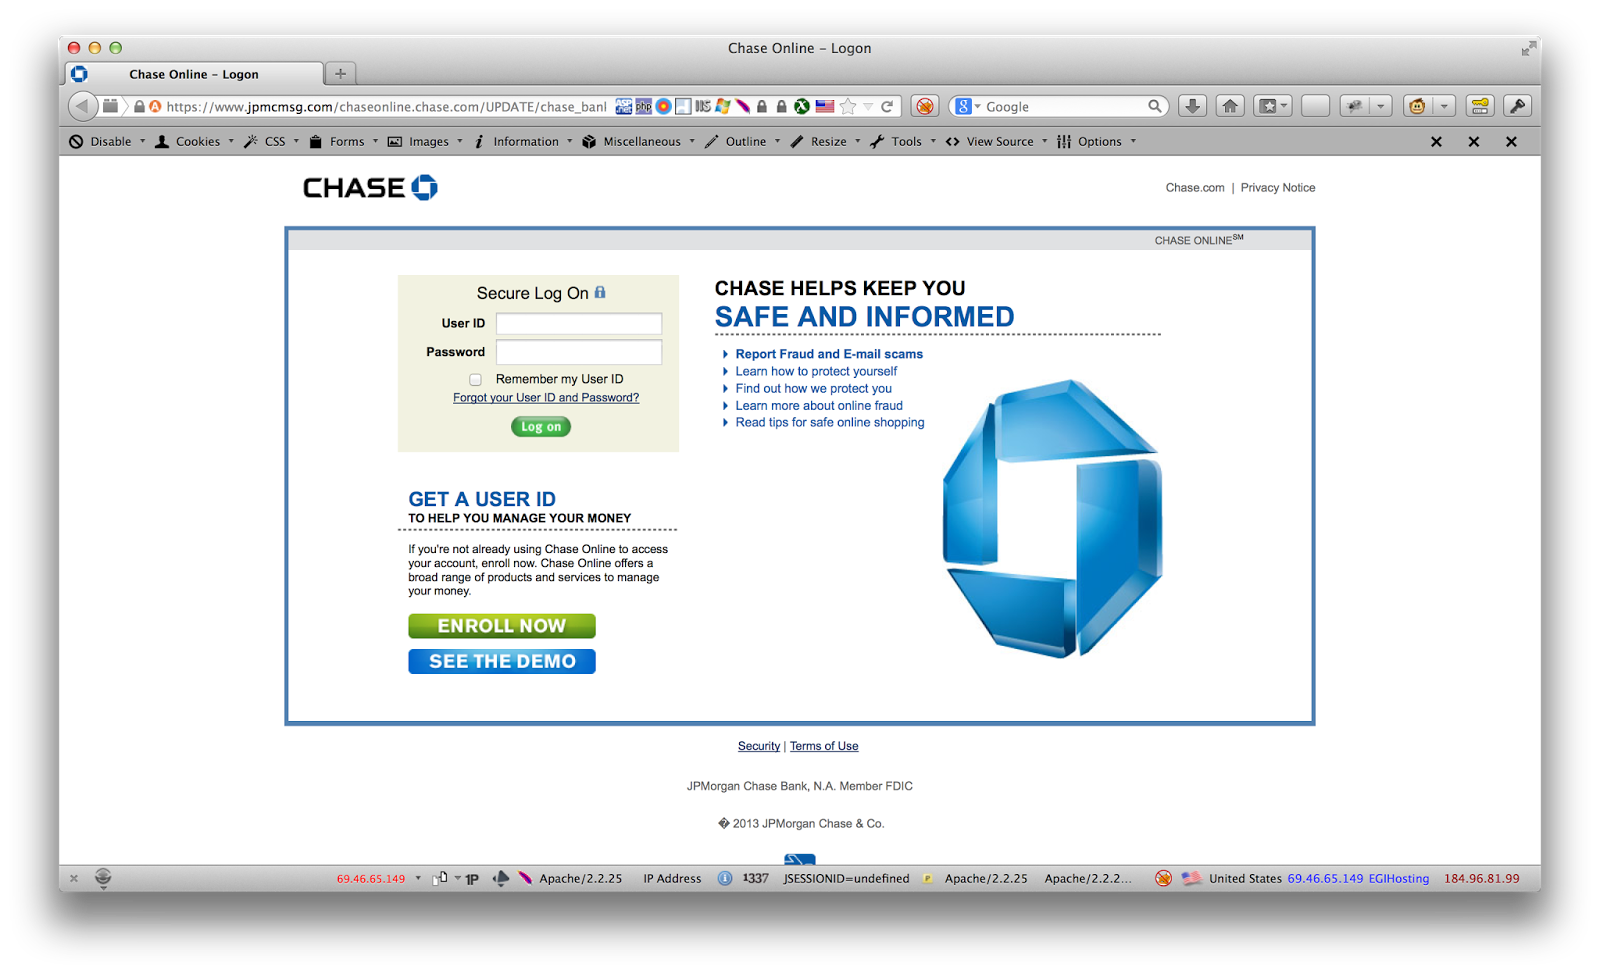 Chase com Phishing Scam | Vitalisec - Vital Information Security